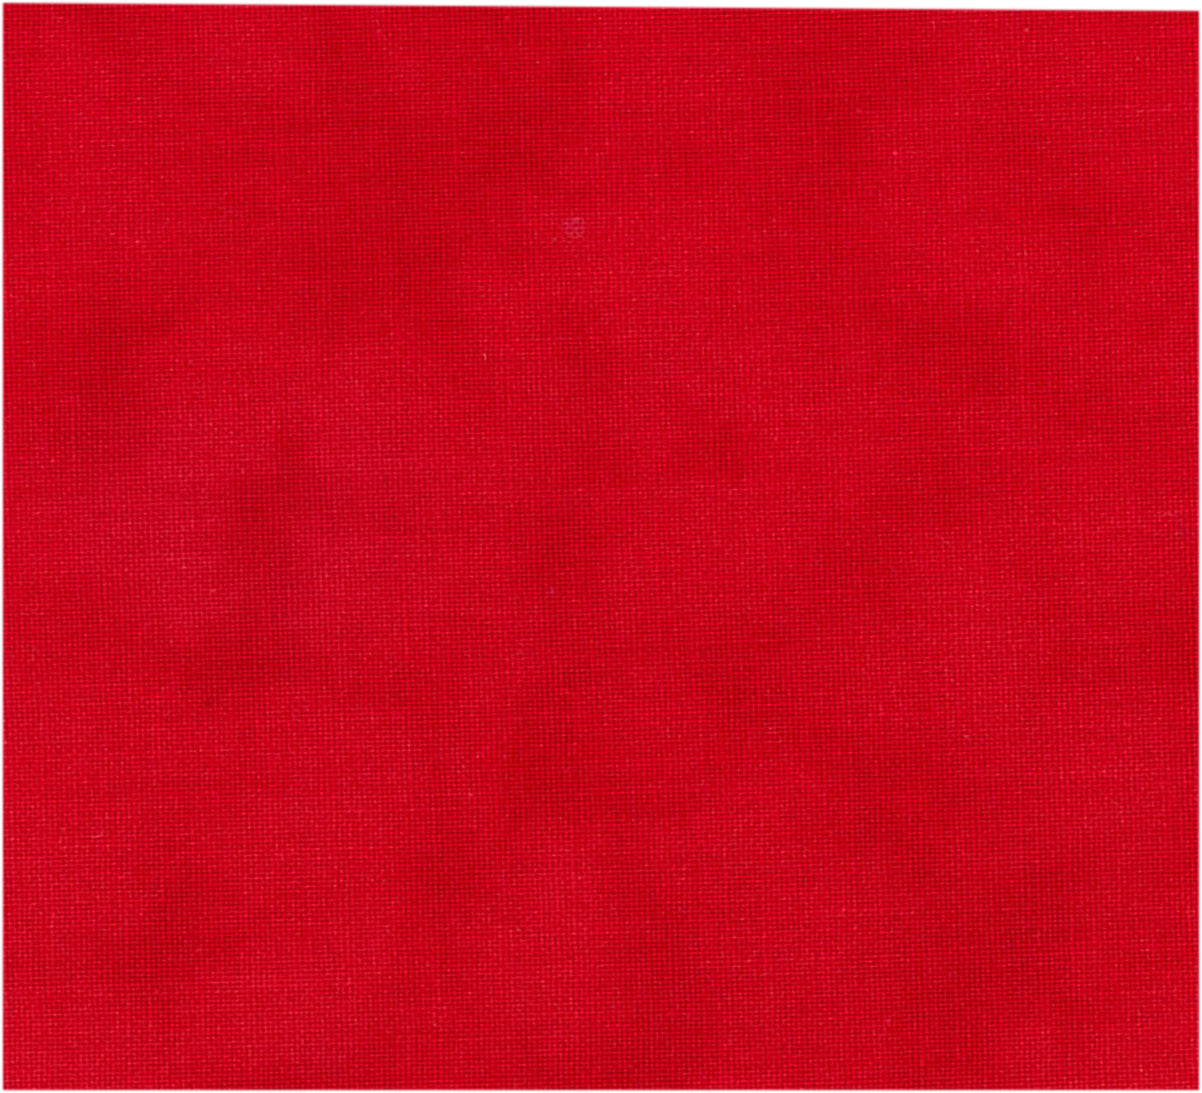 LEA MARBLE FABRIC (RED)